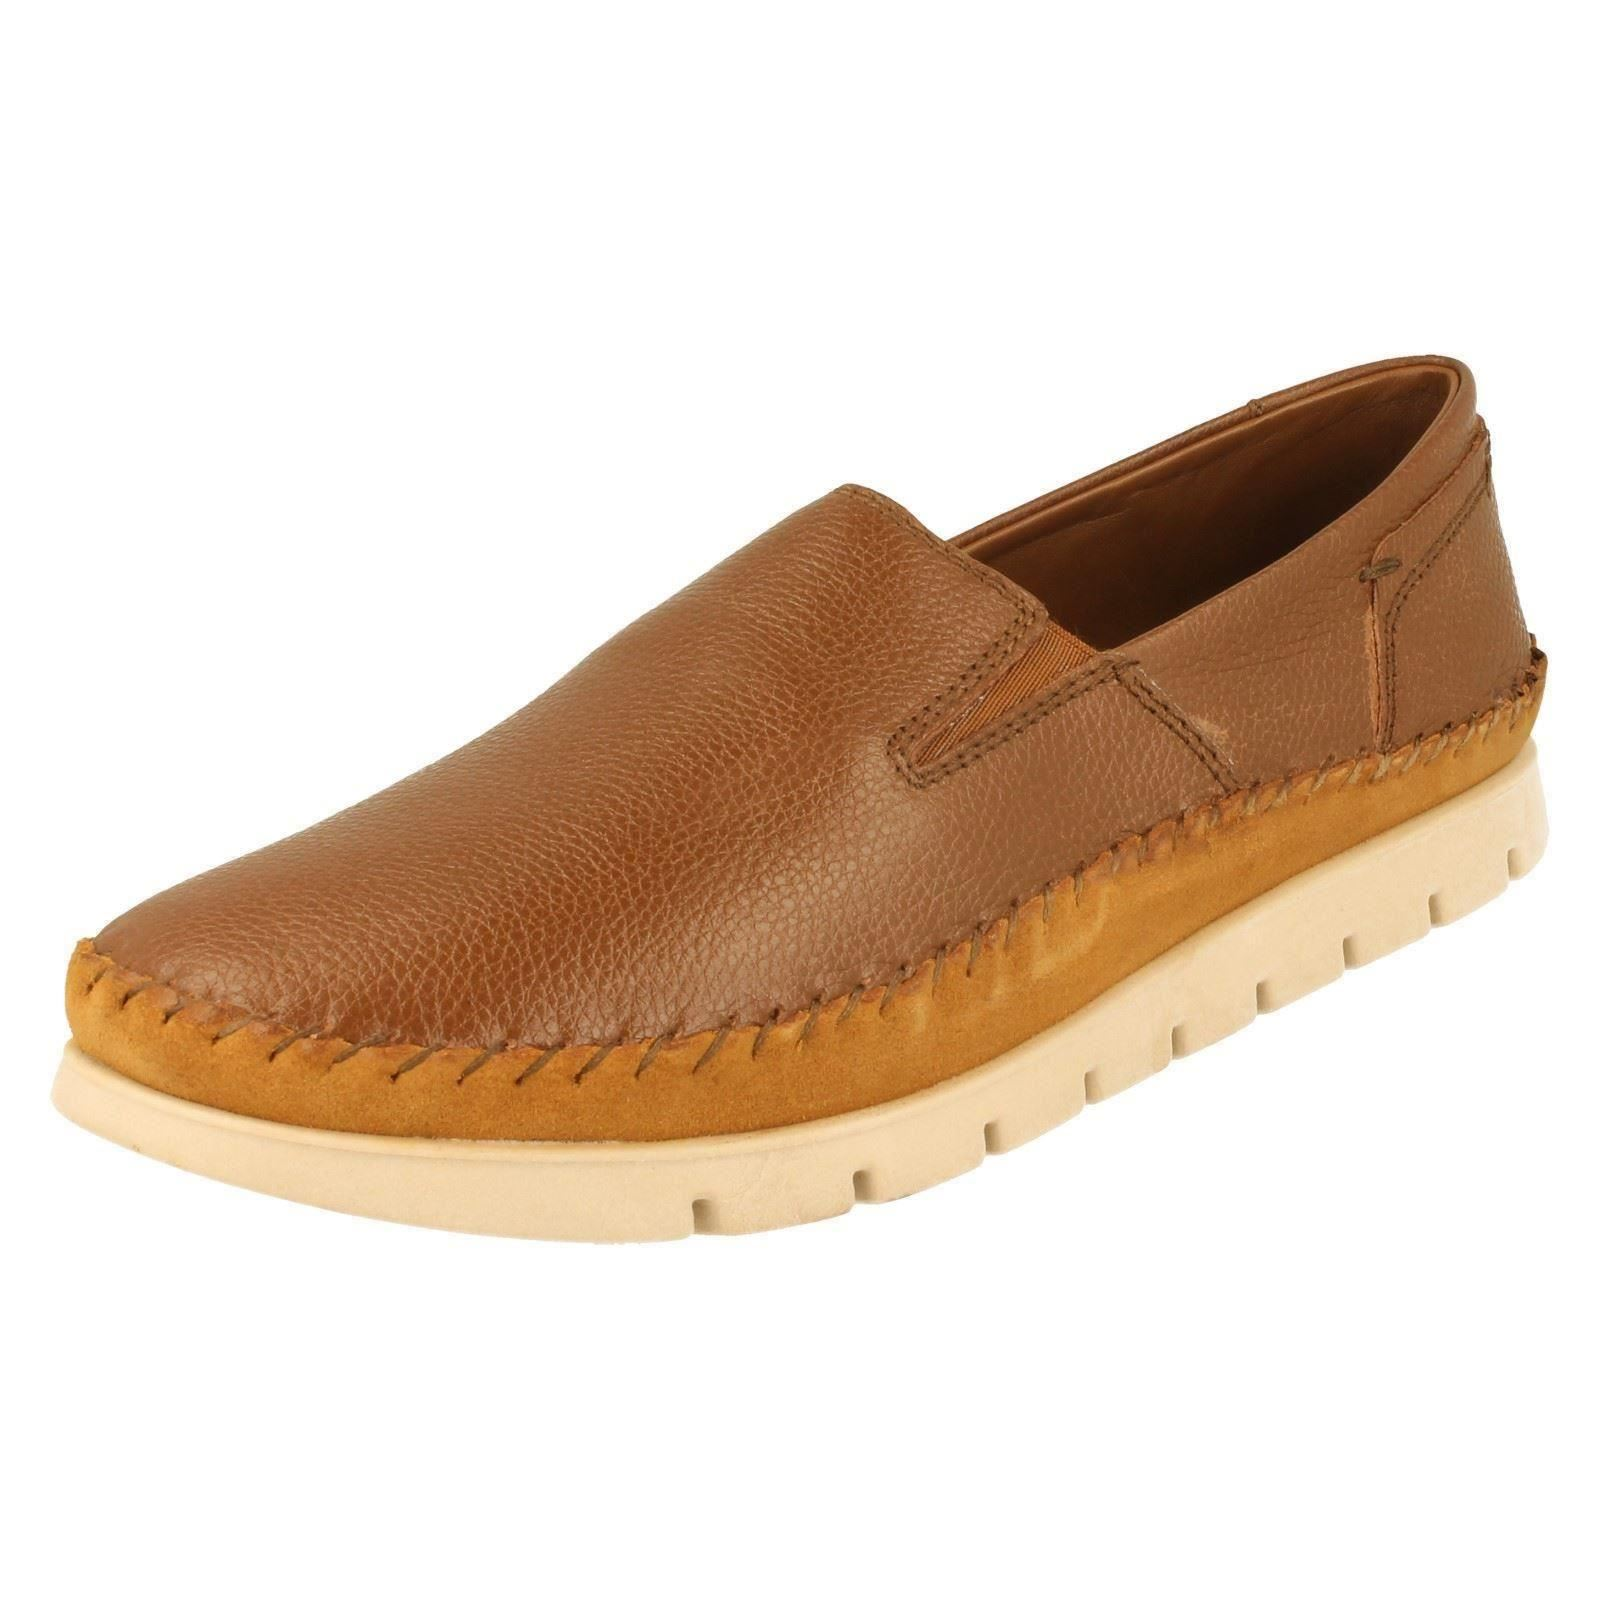 Uomo Padders Schuhes Schuhes Padders Style Tour-W e49360